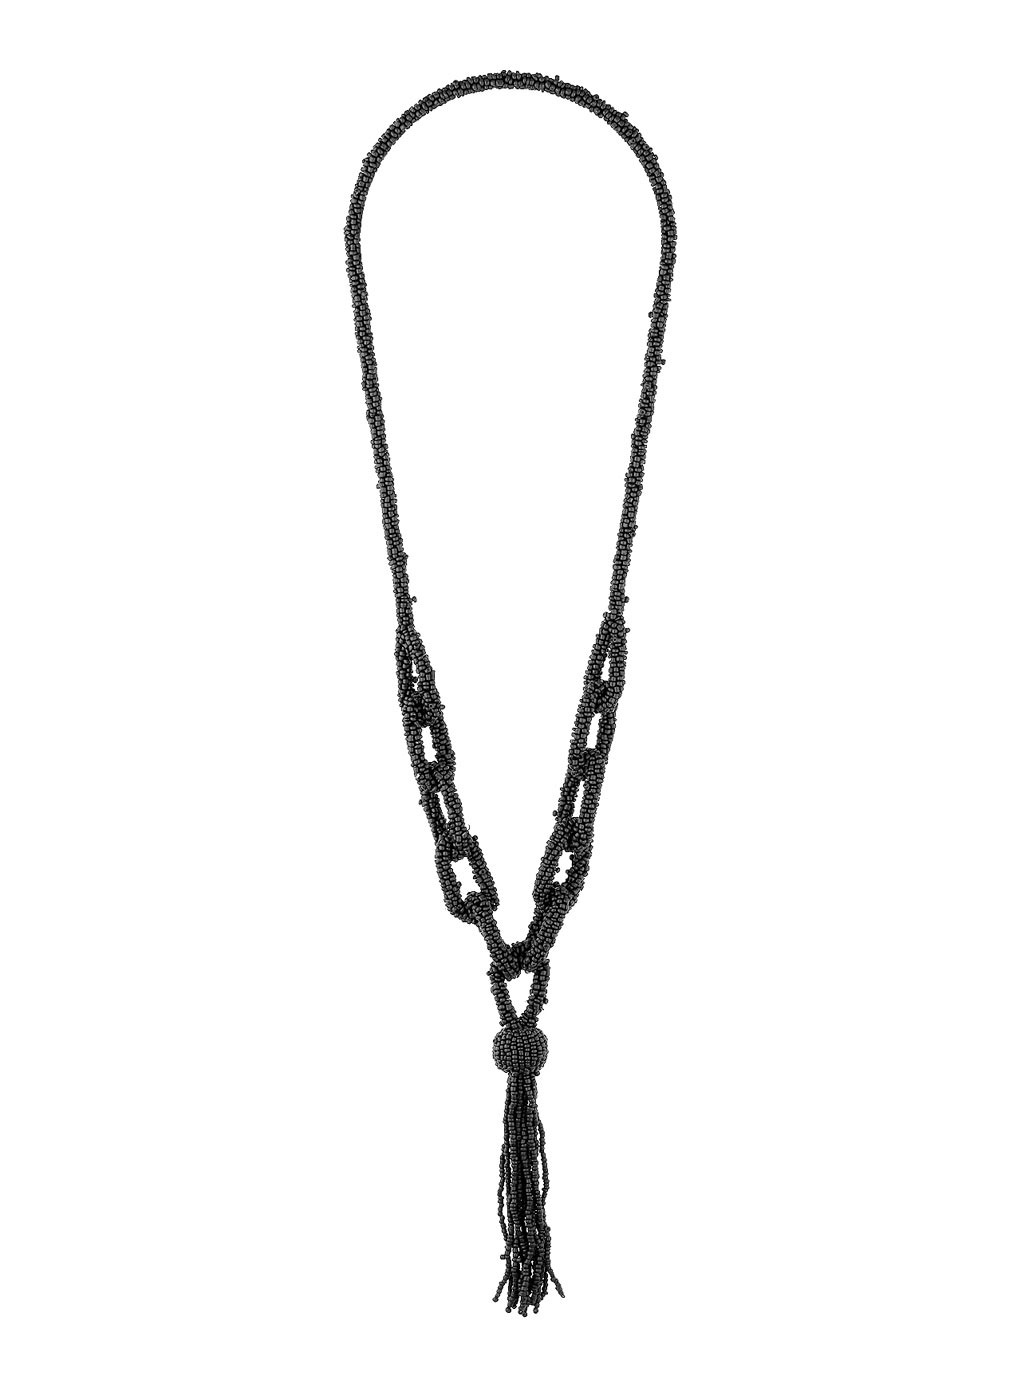 Black Beaded Lariat Necklace - predominant colour: black; occasions: casual, evening, occasion, creative work; style: pendant; length: long; size: large/oversized; material: plastic/rubber; finish: metallic; embellishment: tassels; season: s/s 2014